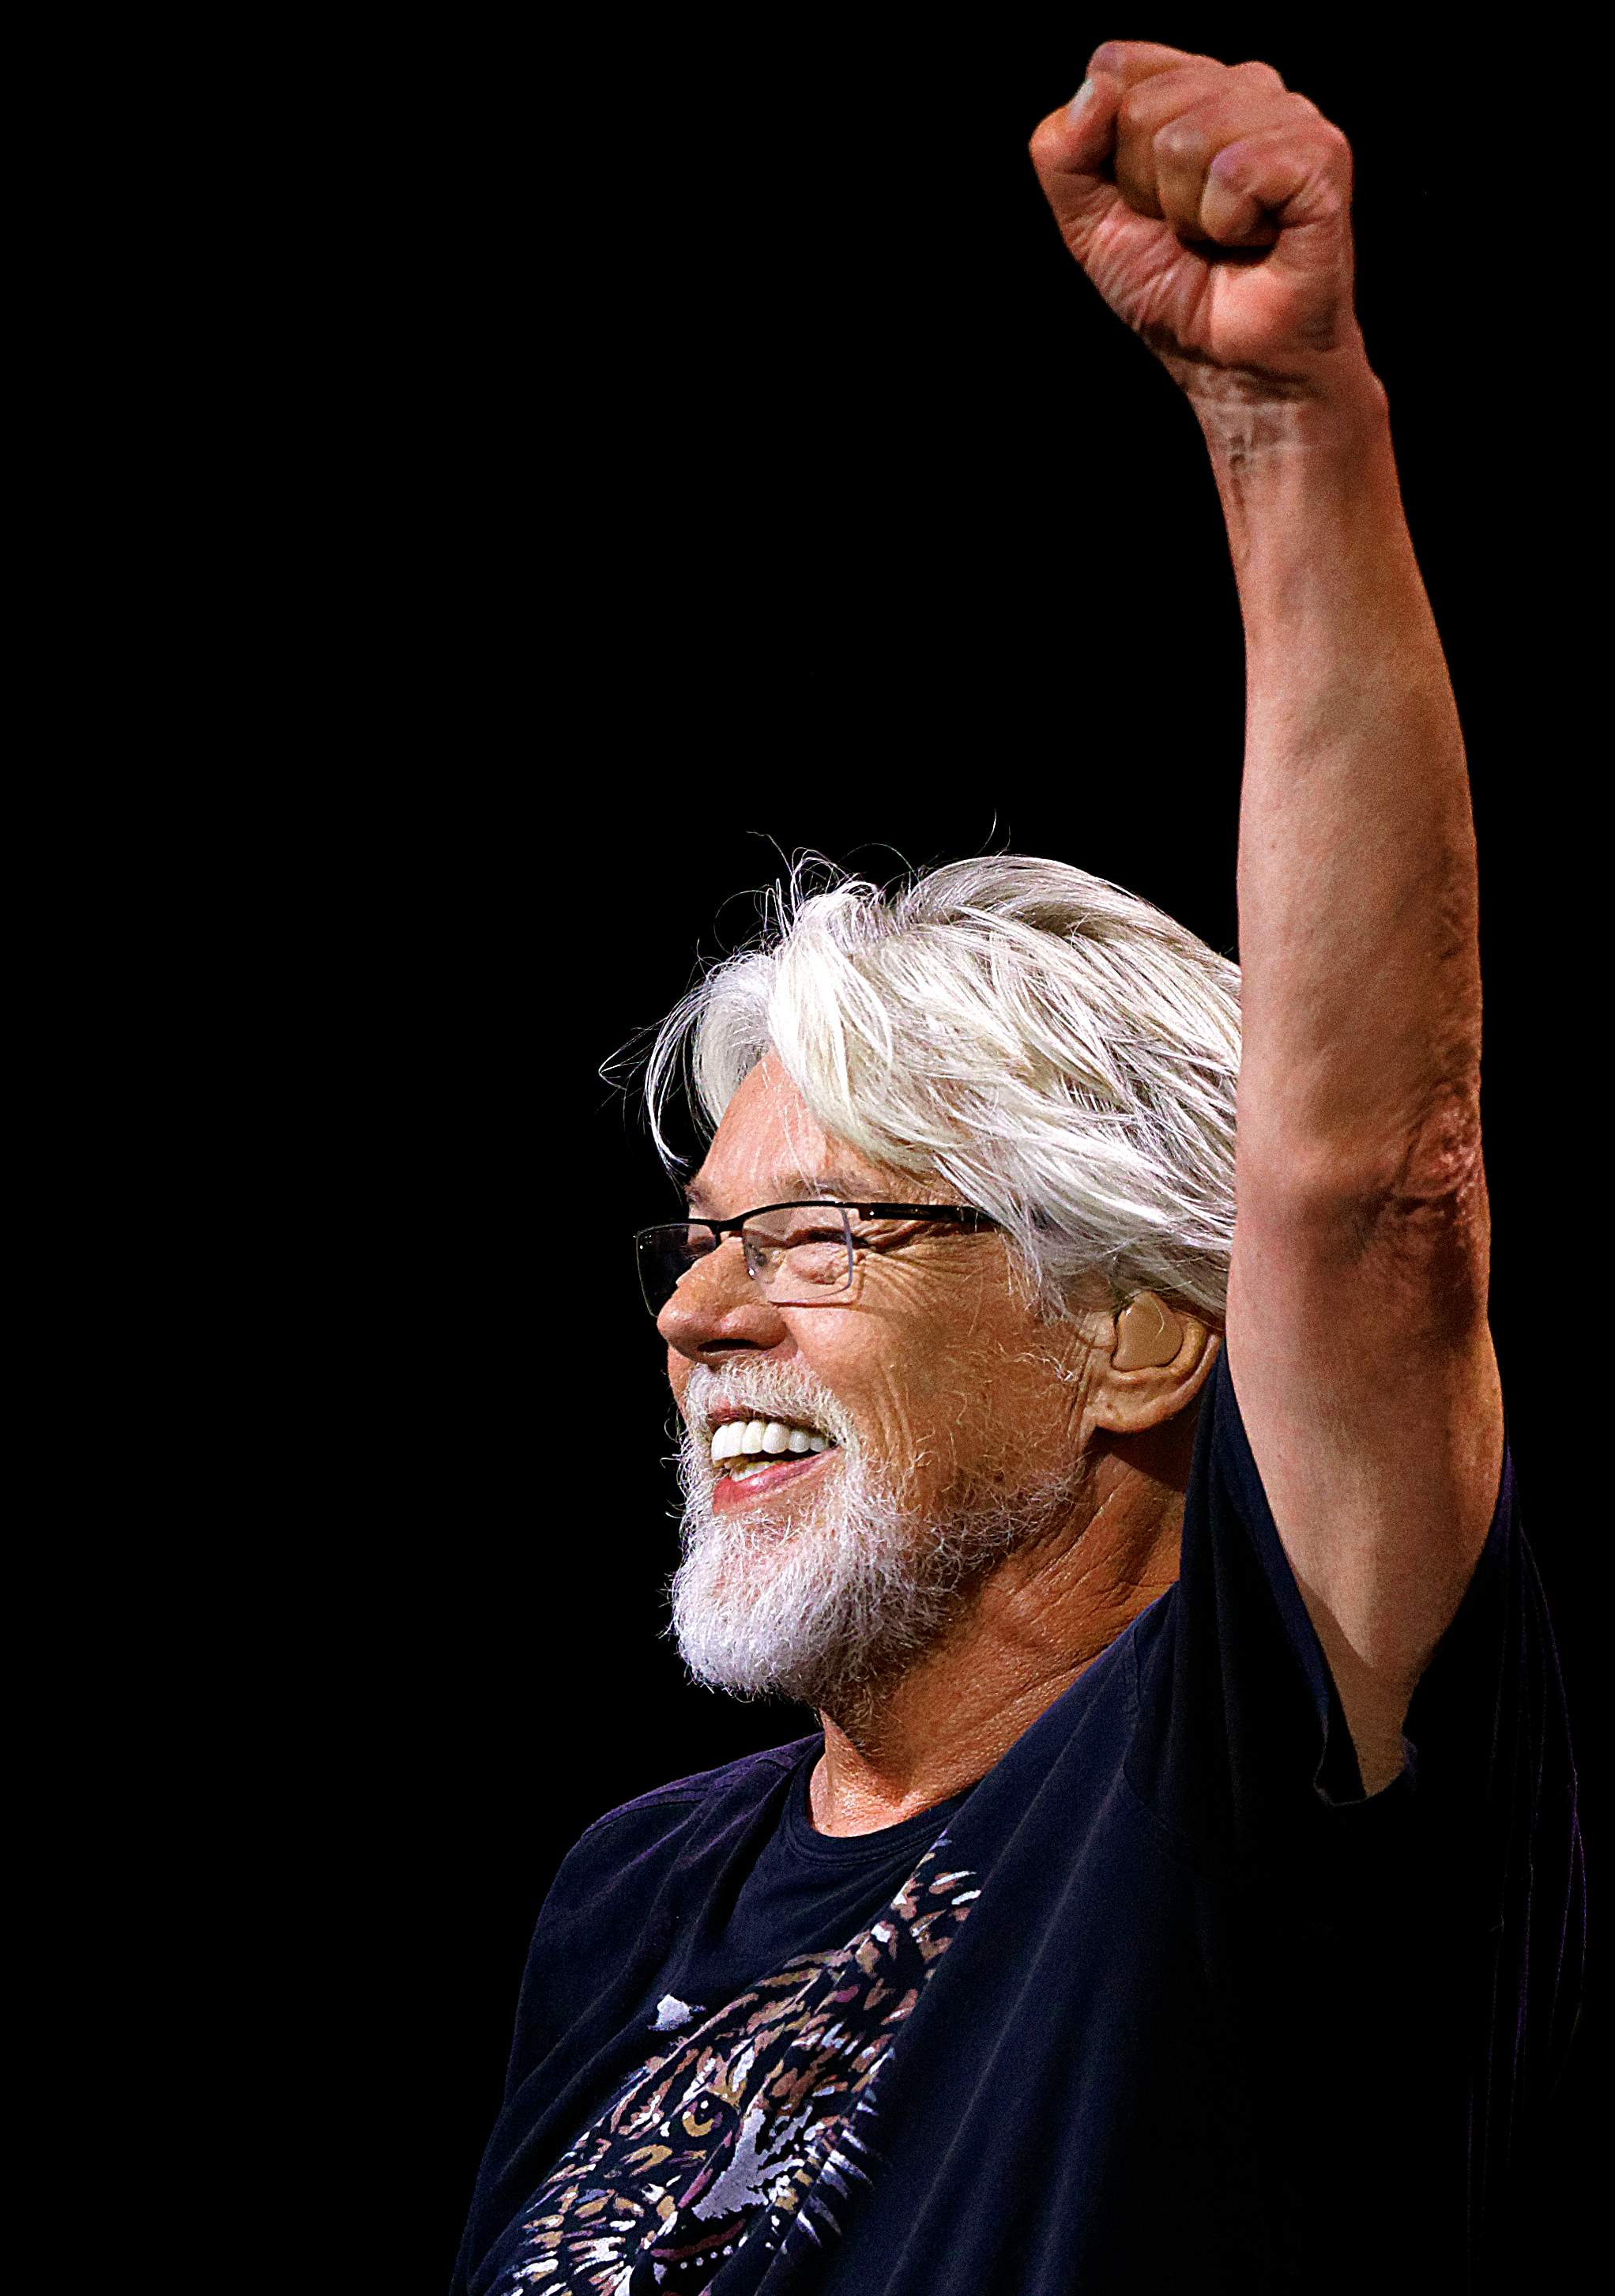 Bob Seger, photo by Ken Settle